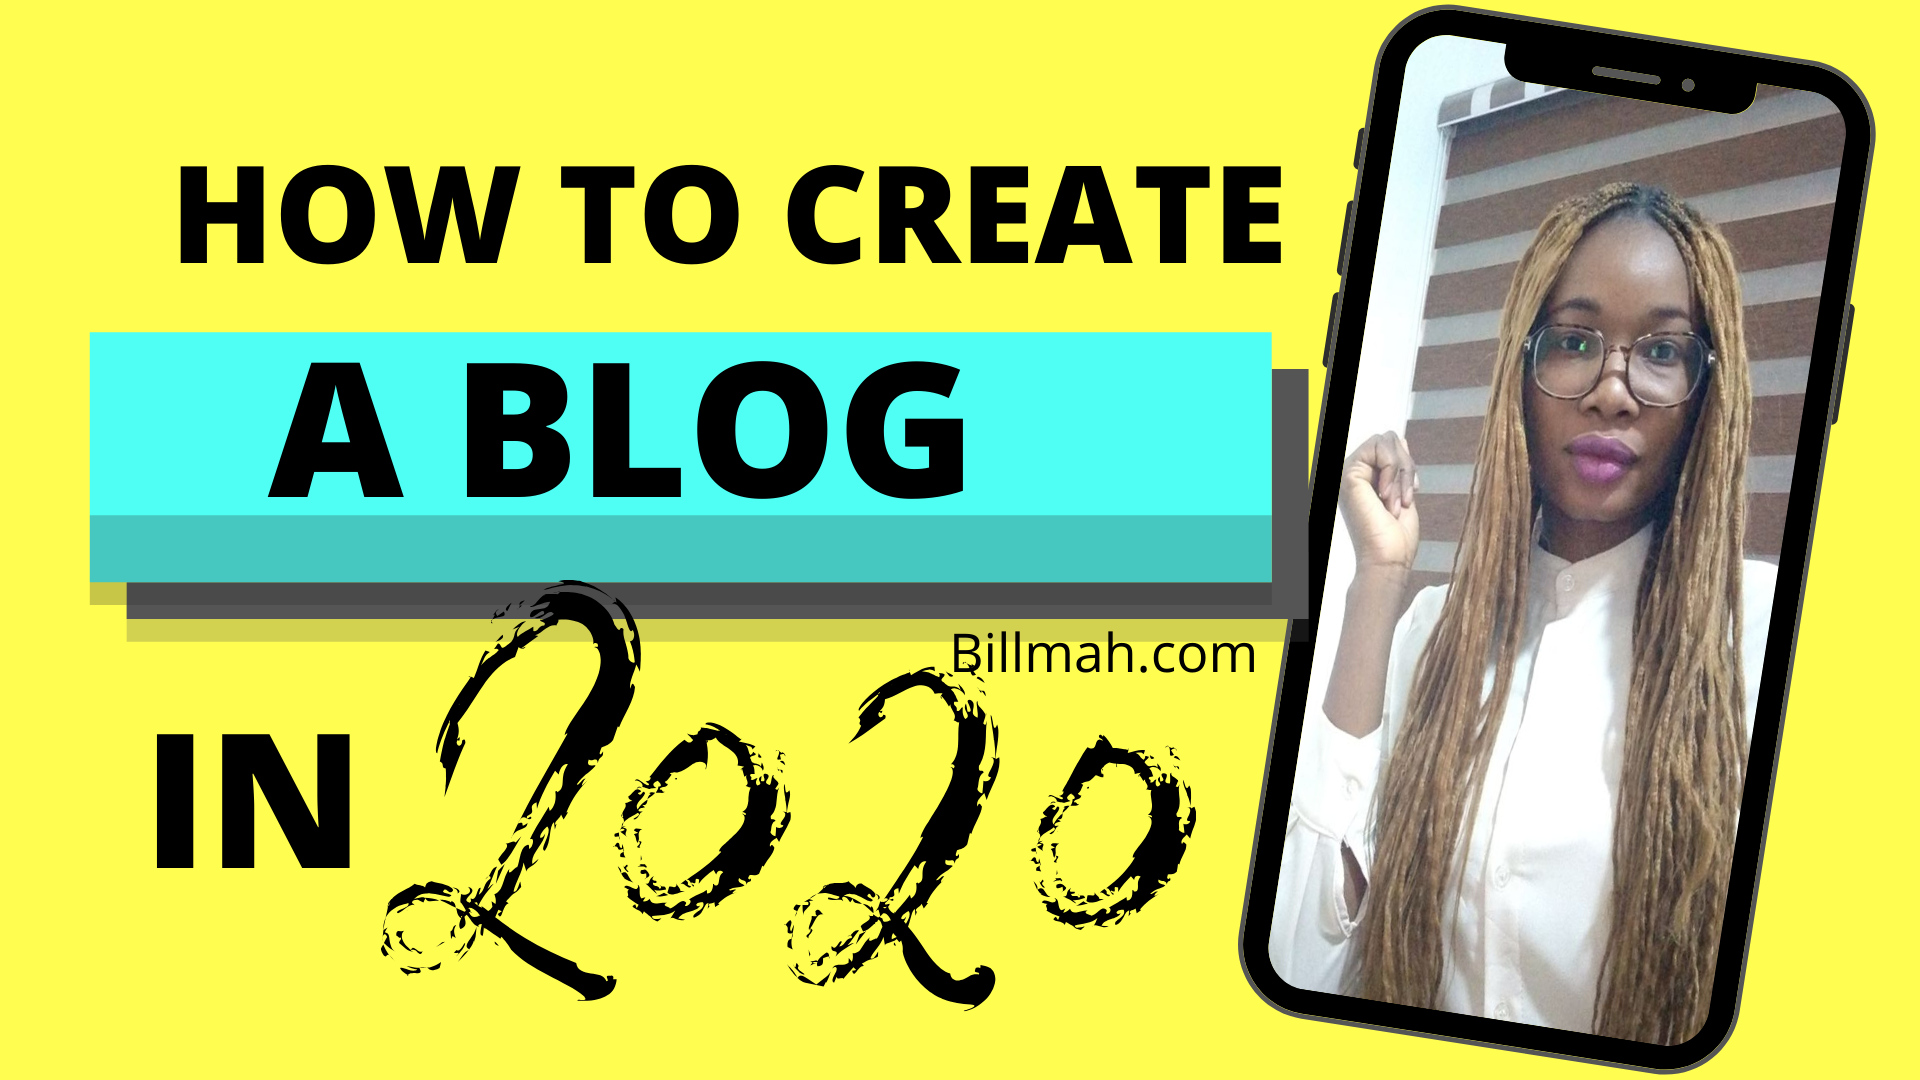 How To Create A Blog In 2020 15